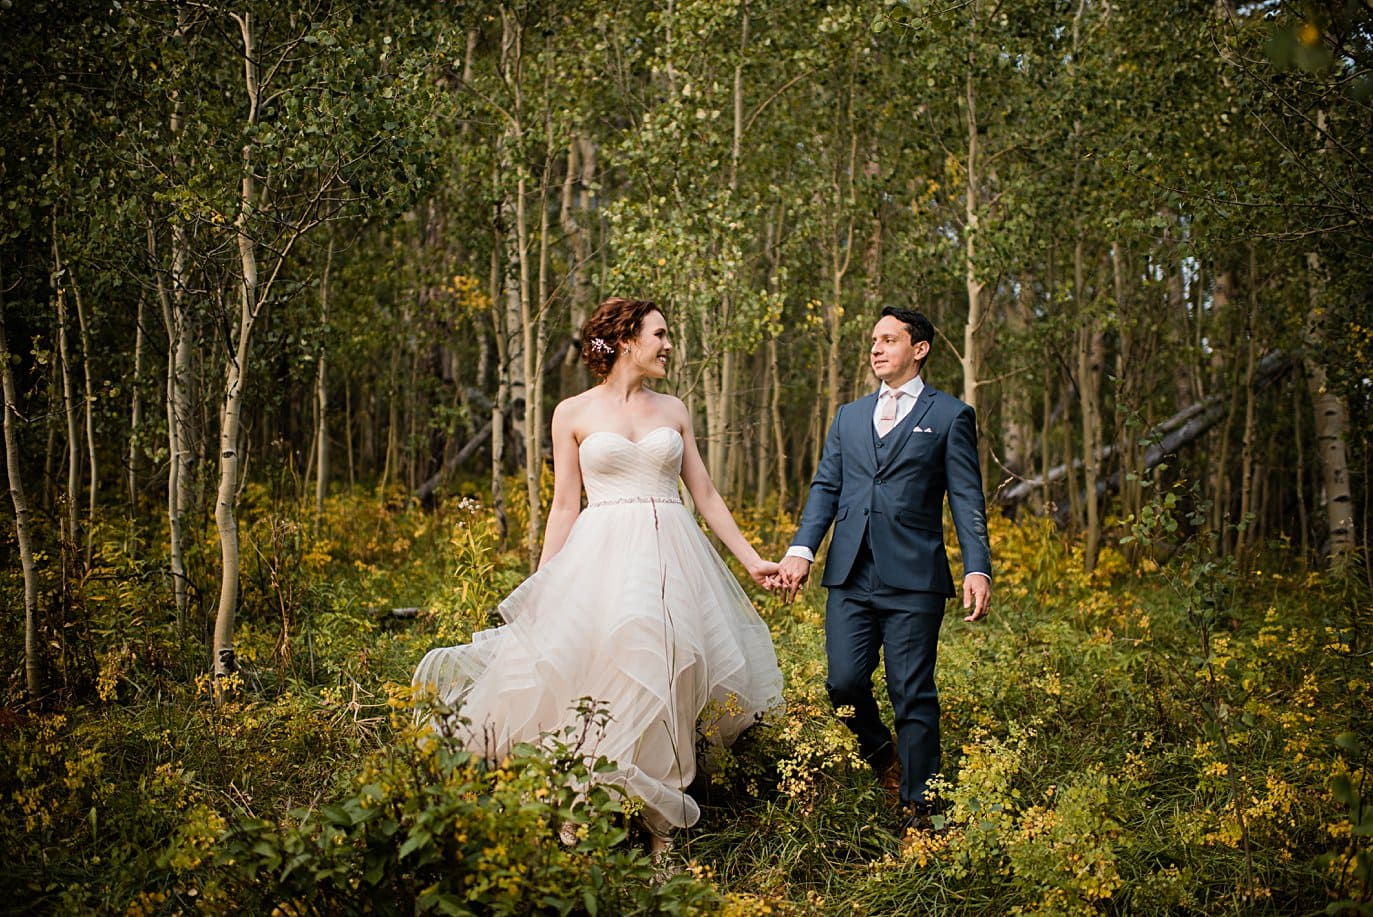 bride and groom walk in aspen trees and fall foliage at fall Maroon Bells wedding by Snowmass wedding photographer Jennie Crate